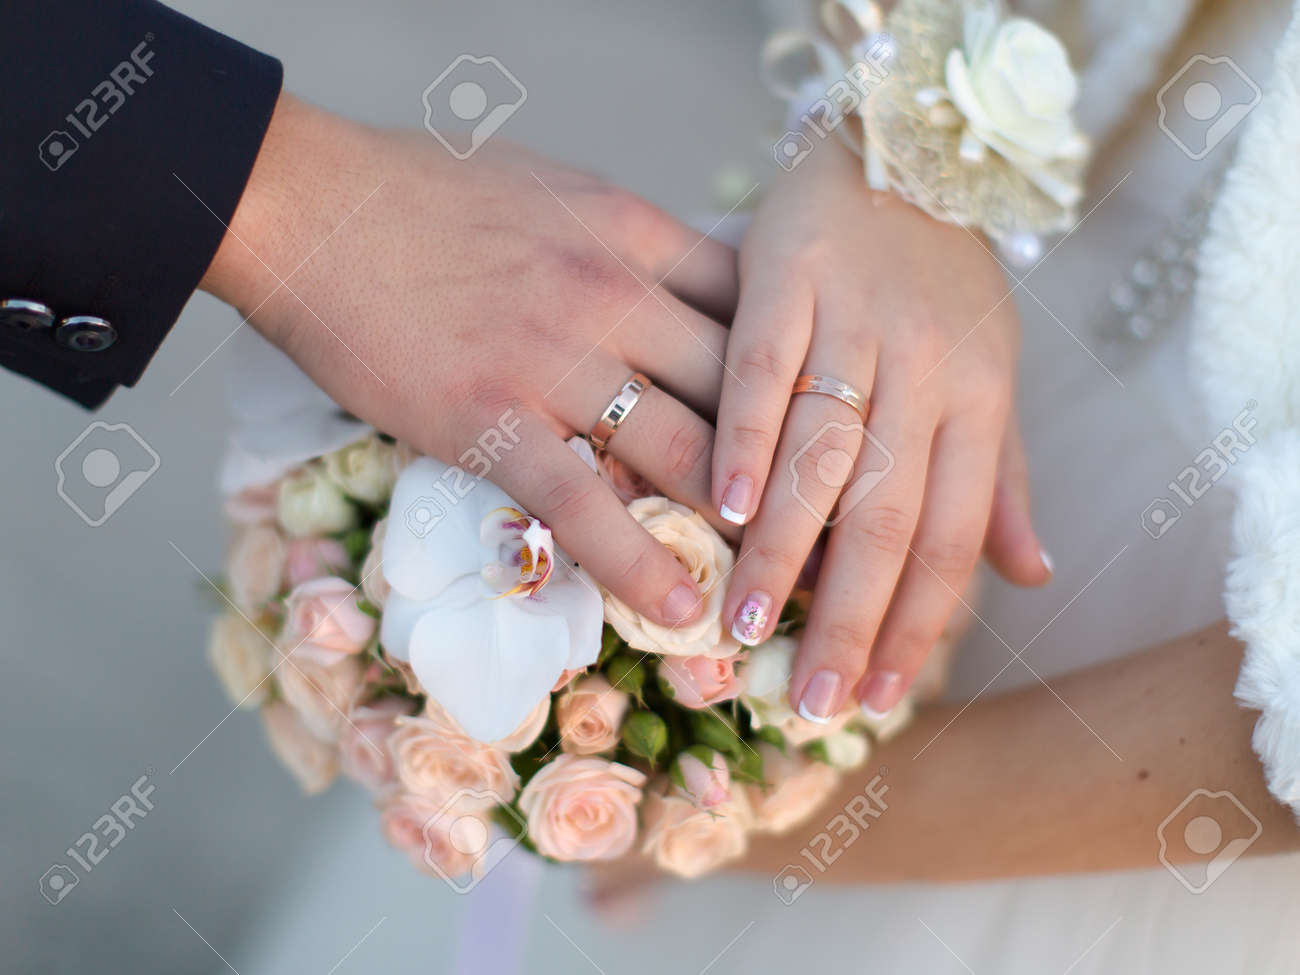 Wedding Hands Hands Of Newly Wedded In Time Of Wedding Ceremony ...